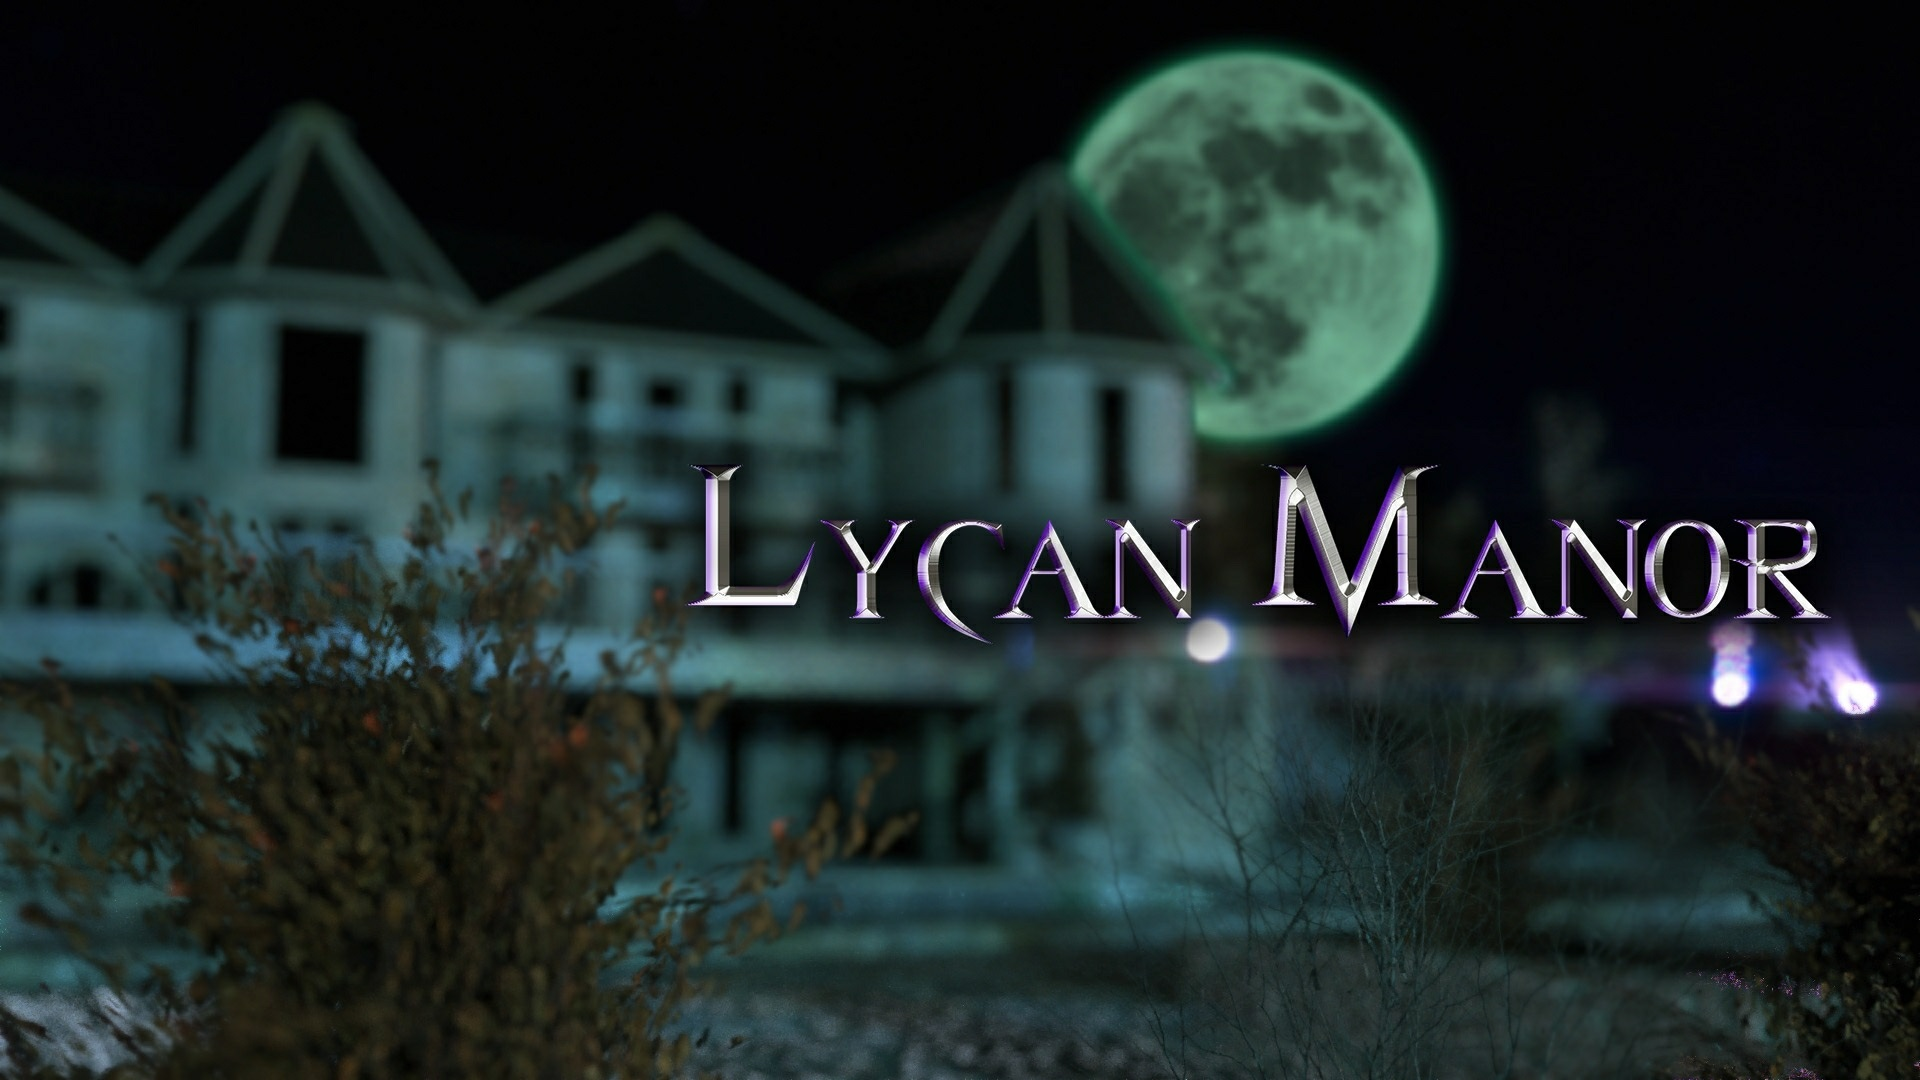 Lycan Manor - 3DXArt